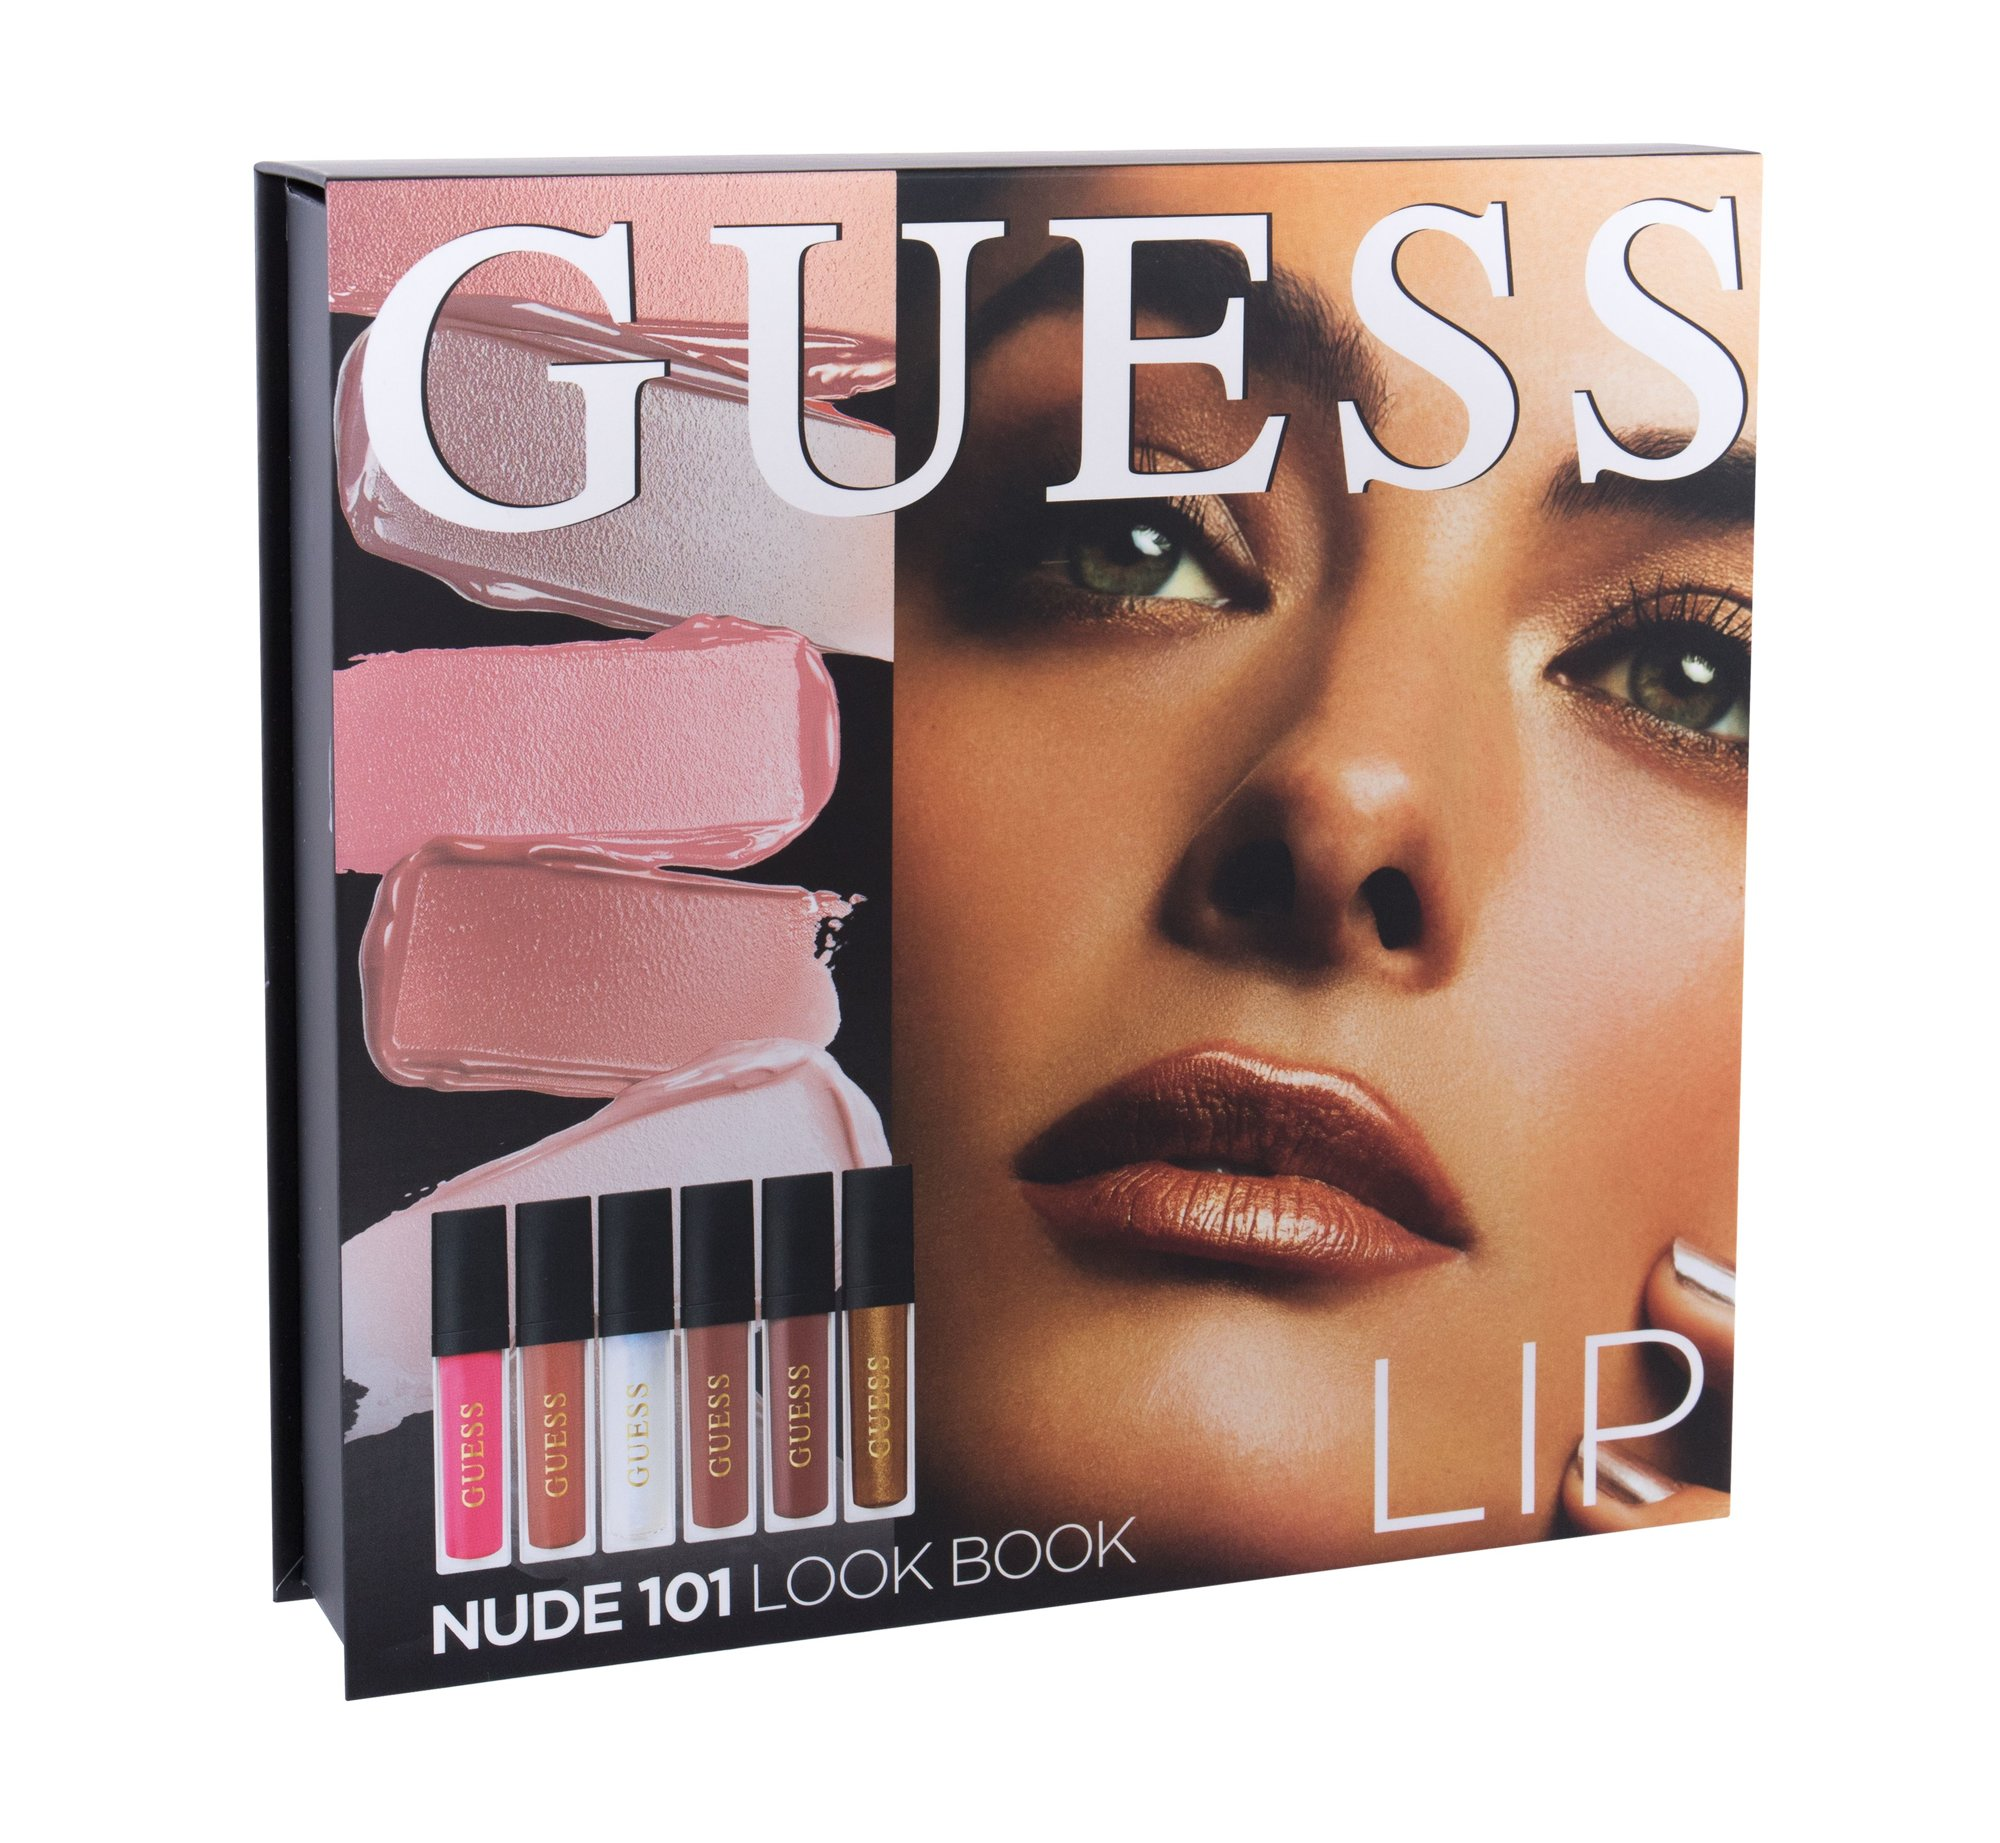 GUESS Look Book Lipstick 4ml 101 Nude